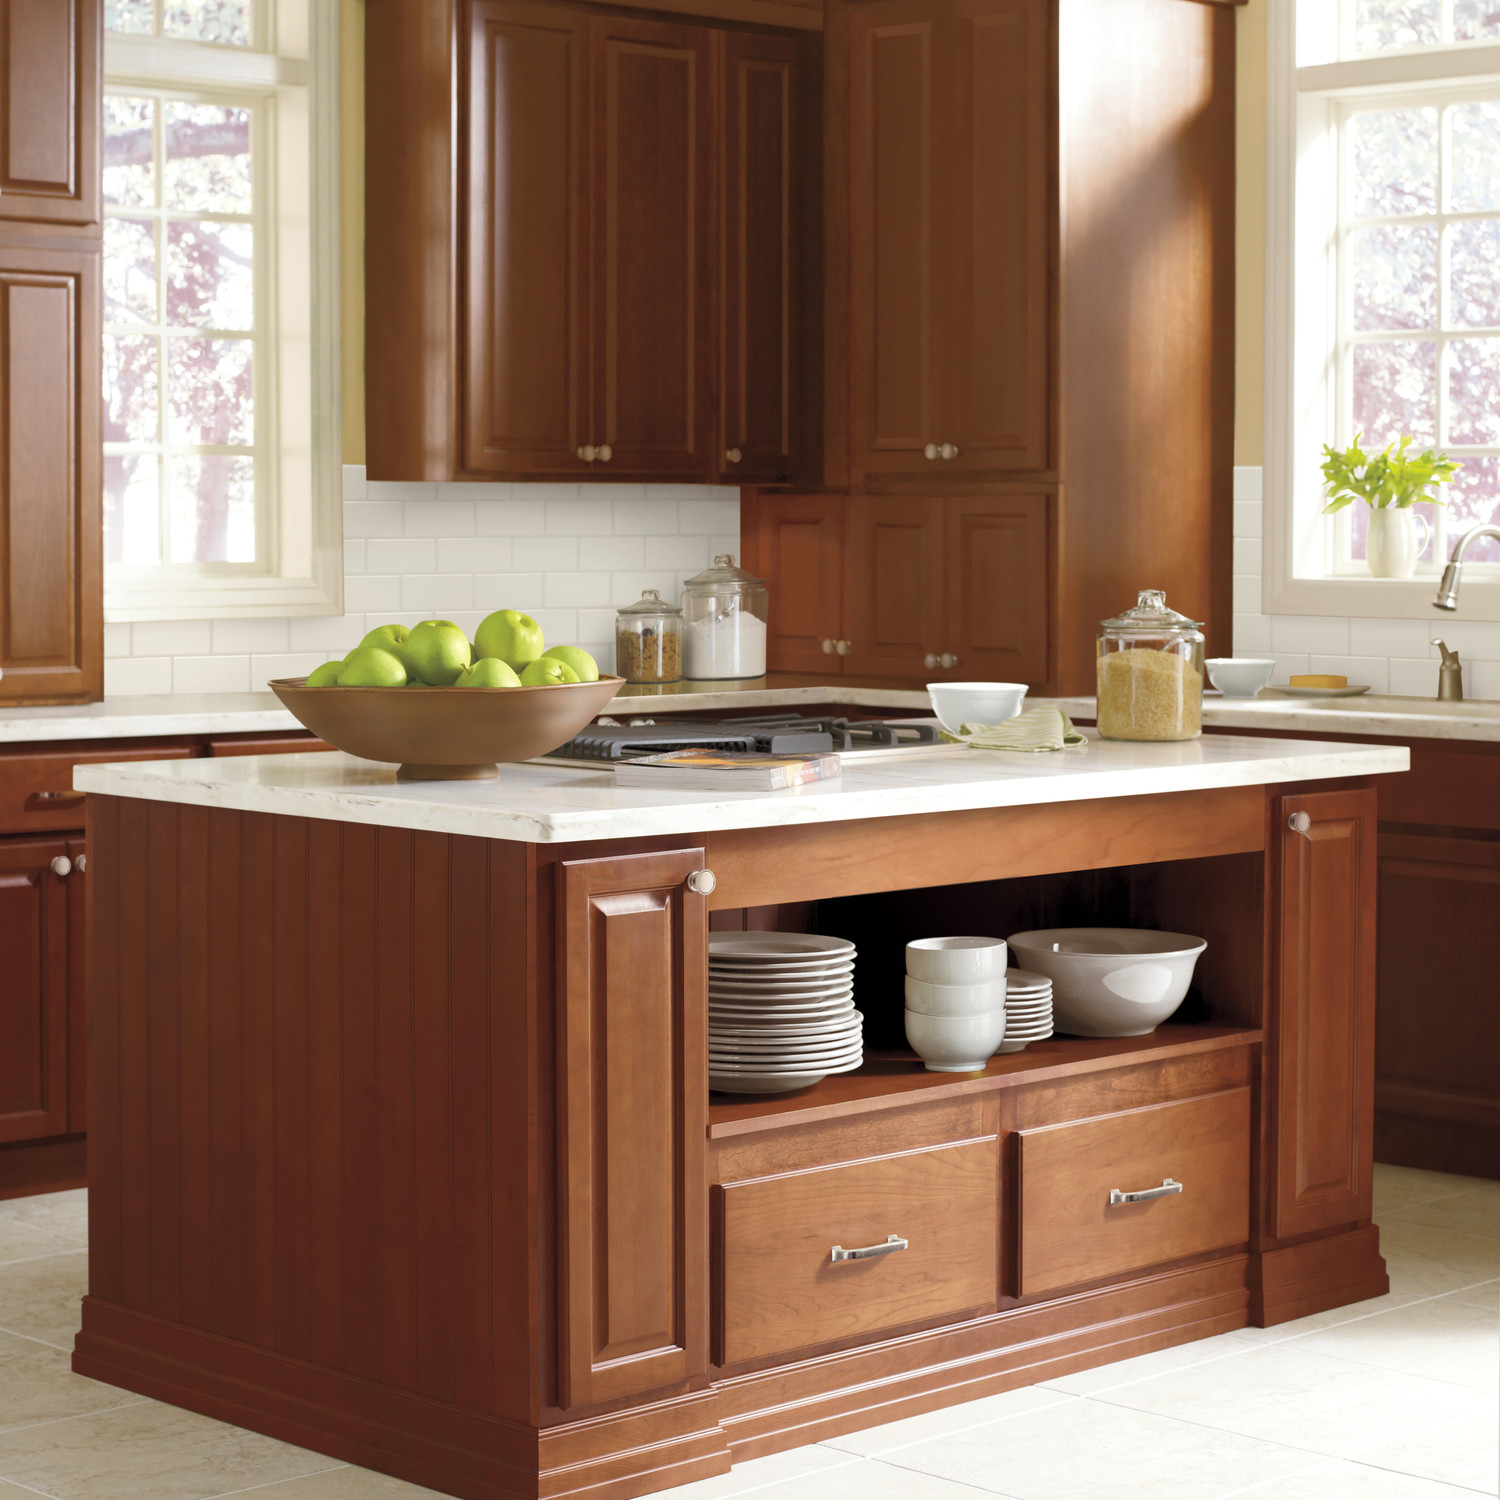 How to Properly Care for Your Kitchen Cabinets